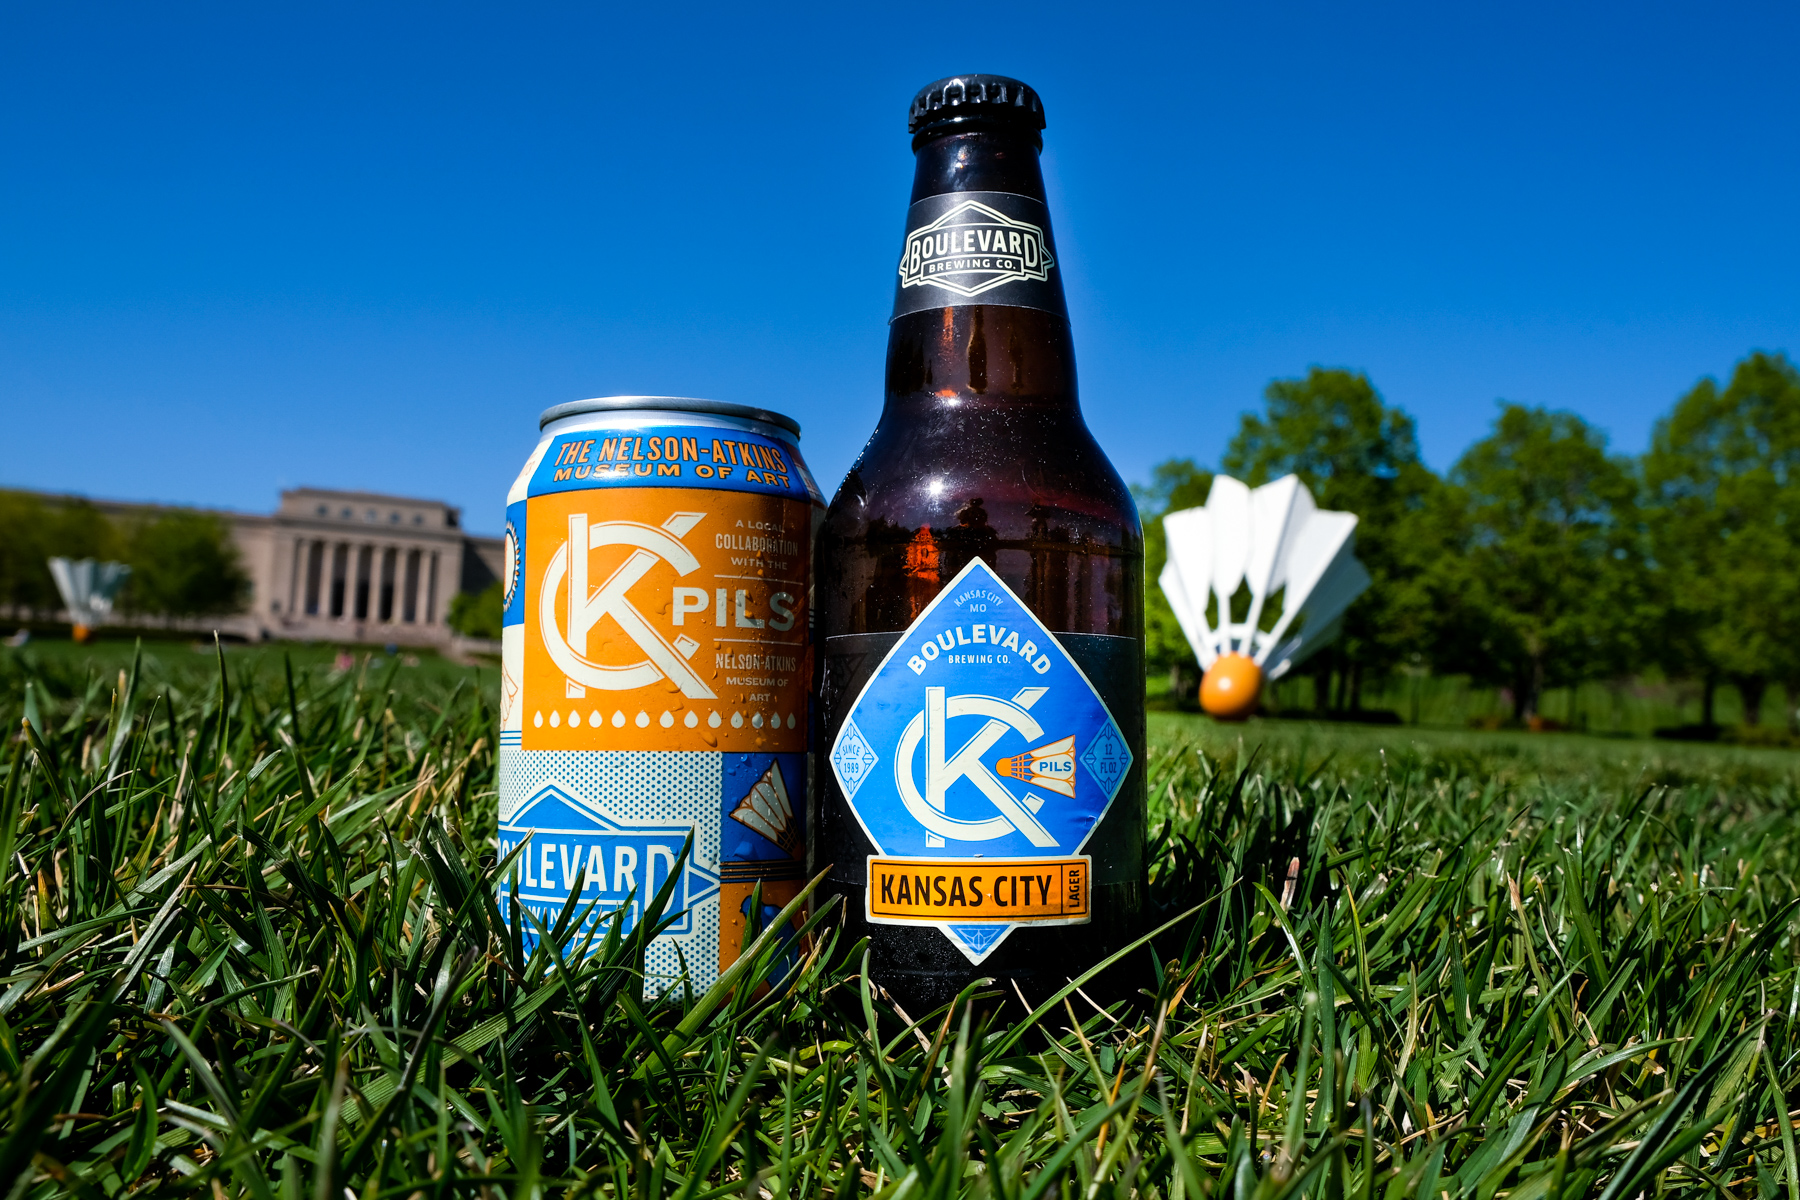 KC Pils Partners program: The Nelson-Atkins Museum of Art